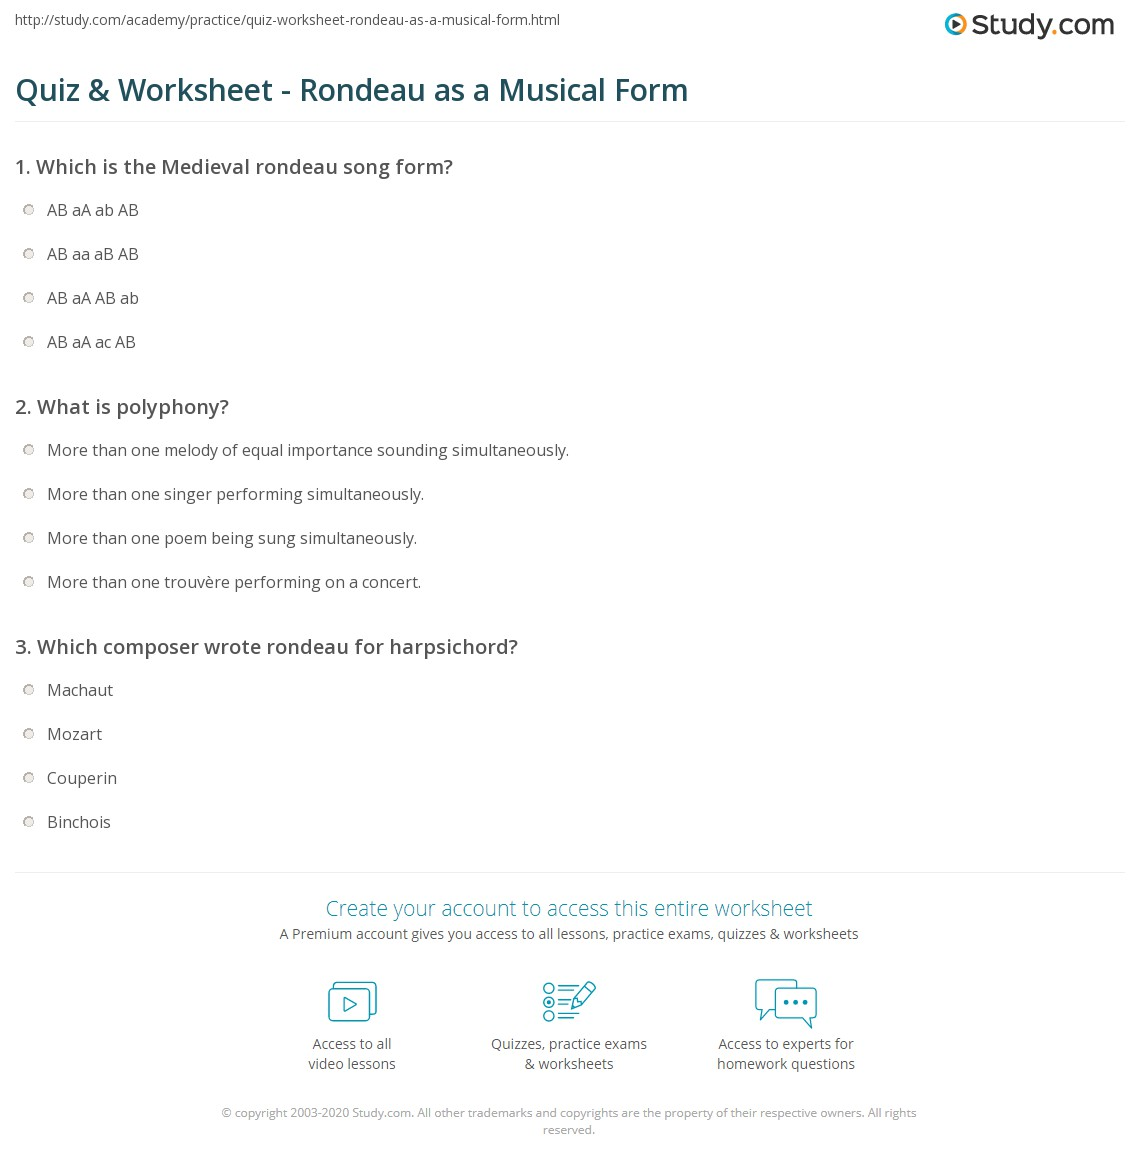 Quiz & Worksheet - Rondeau as a Musical Form | Study.com